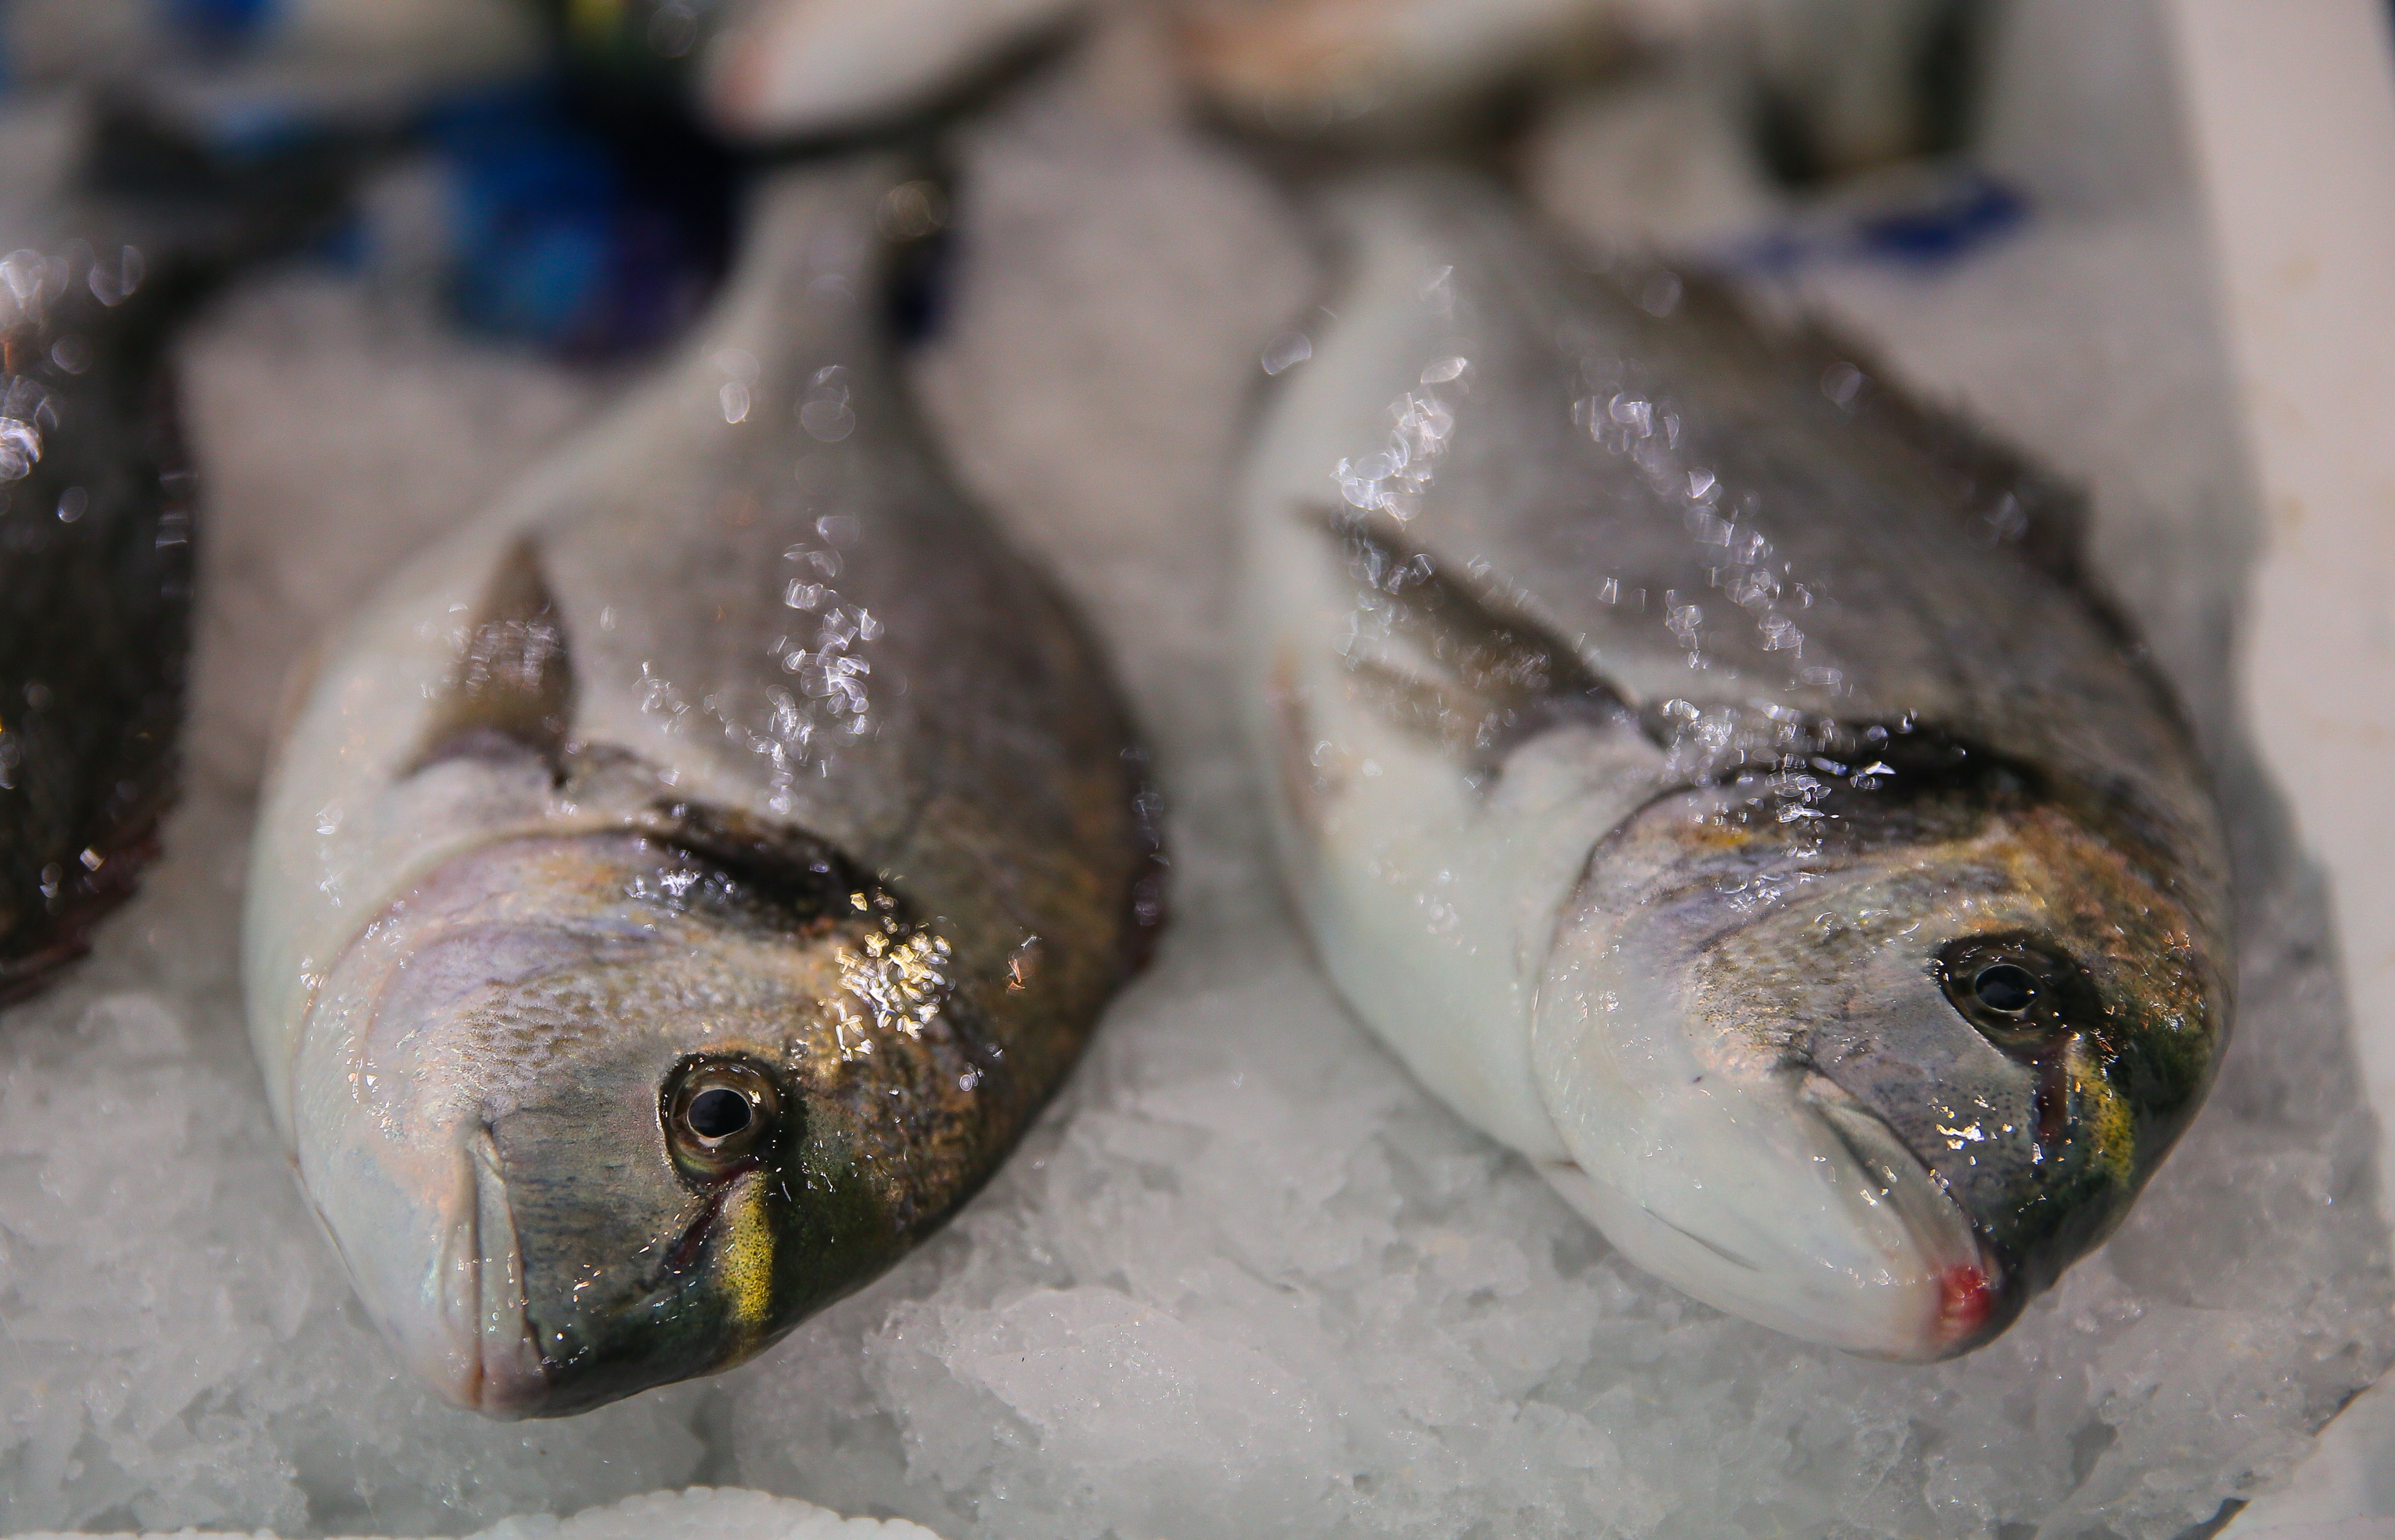 A close-up photo of two fresh fish on ice